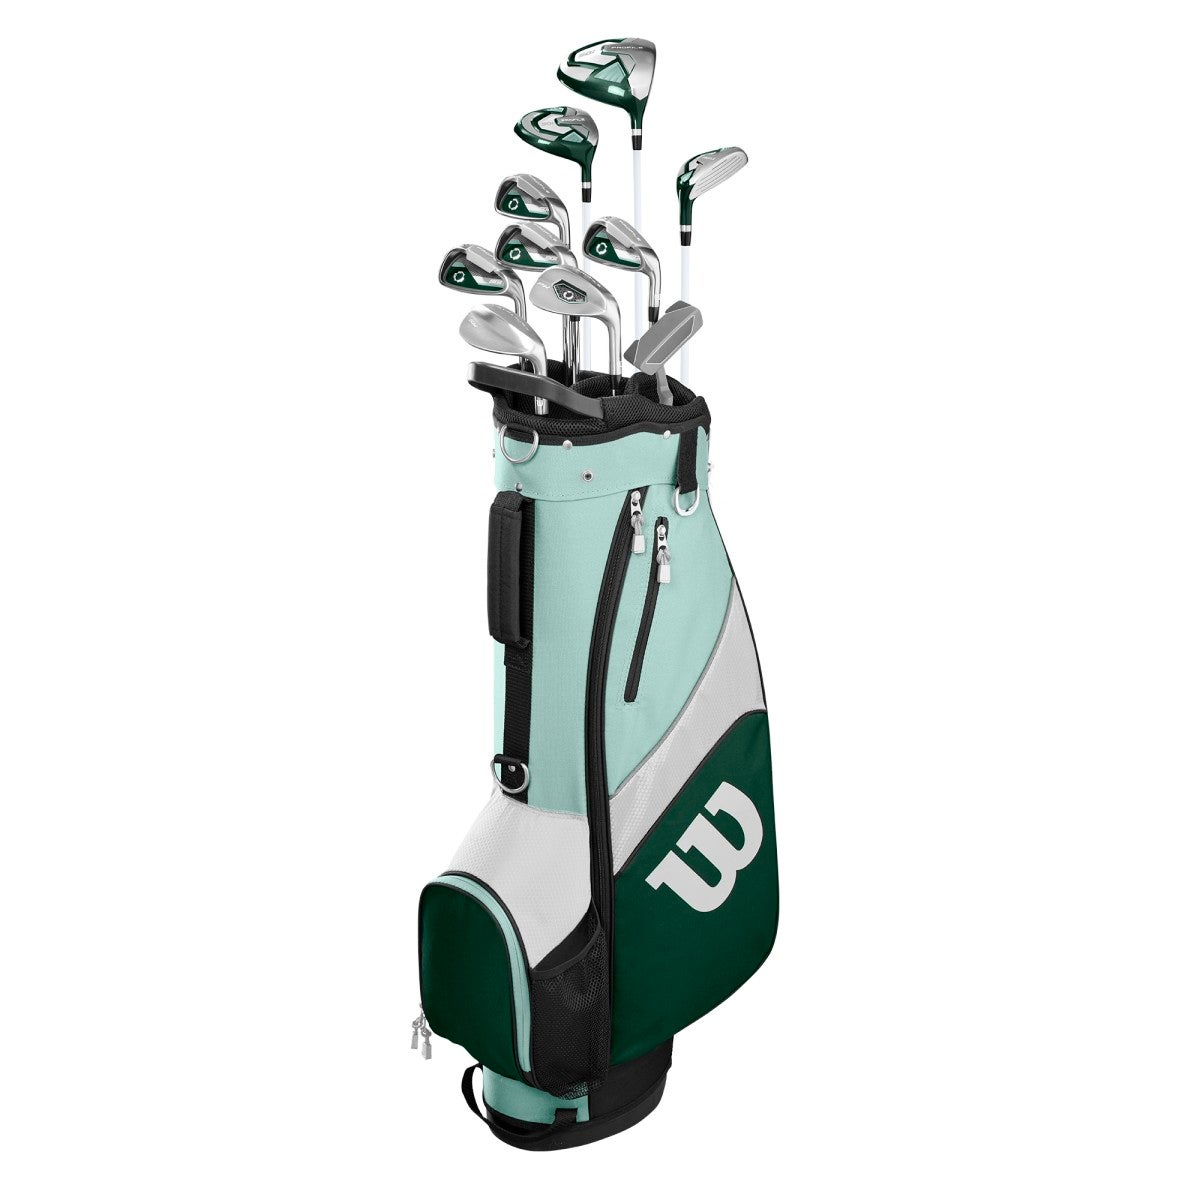 Women's Profile SGI Complete Golf Club Set - Cart